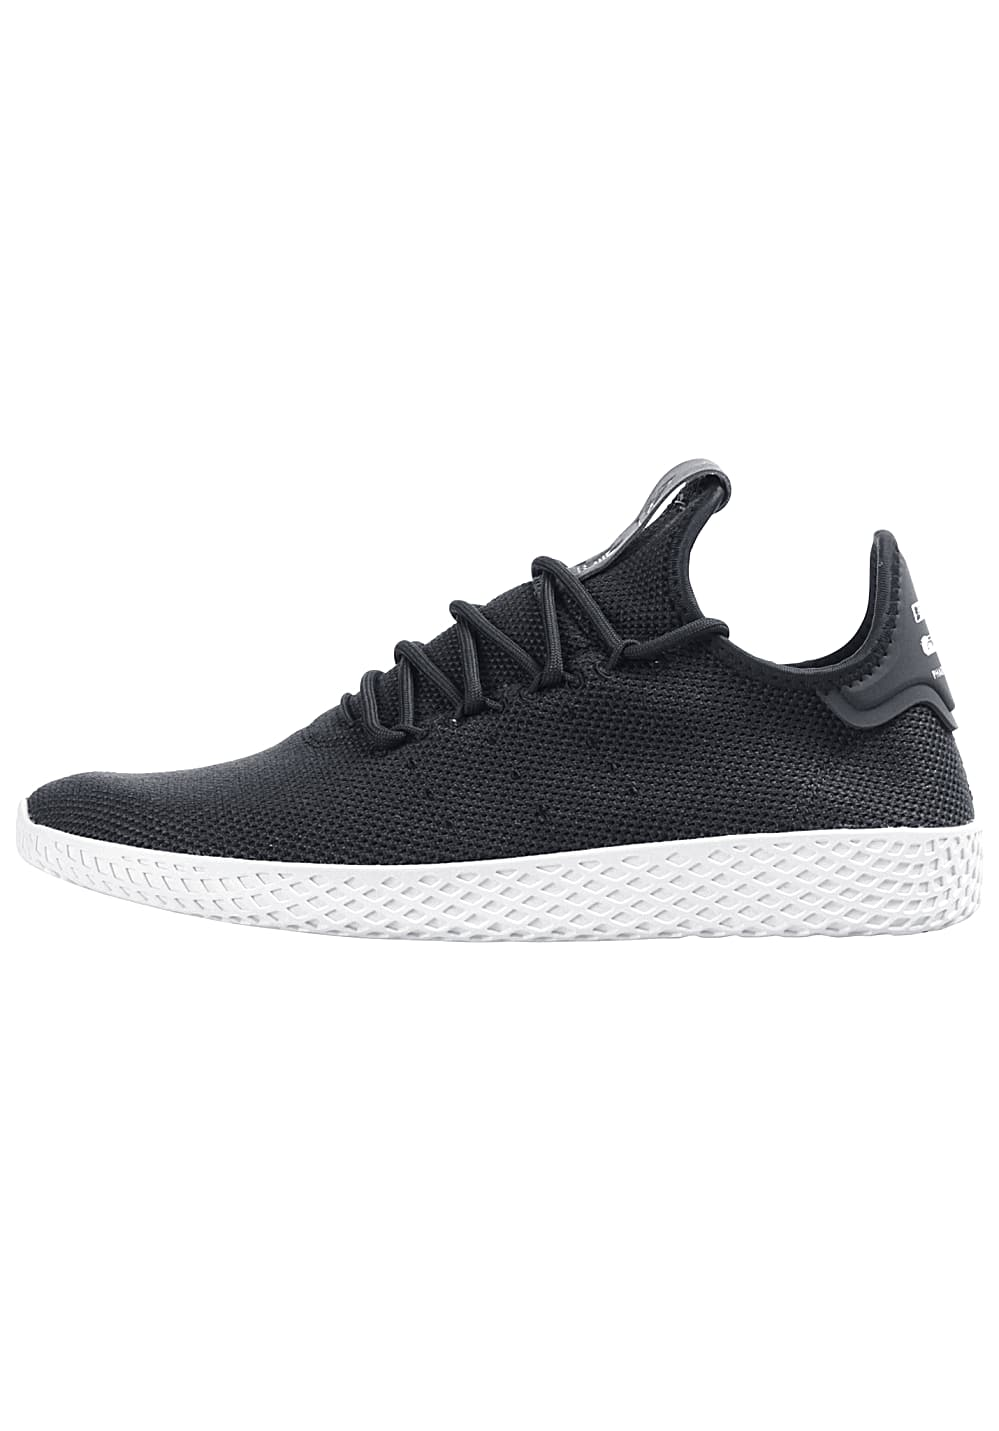 adidas Originals Pharrell Williams Tennis Hu - Sneaker für Herren - Grau